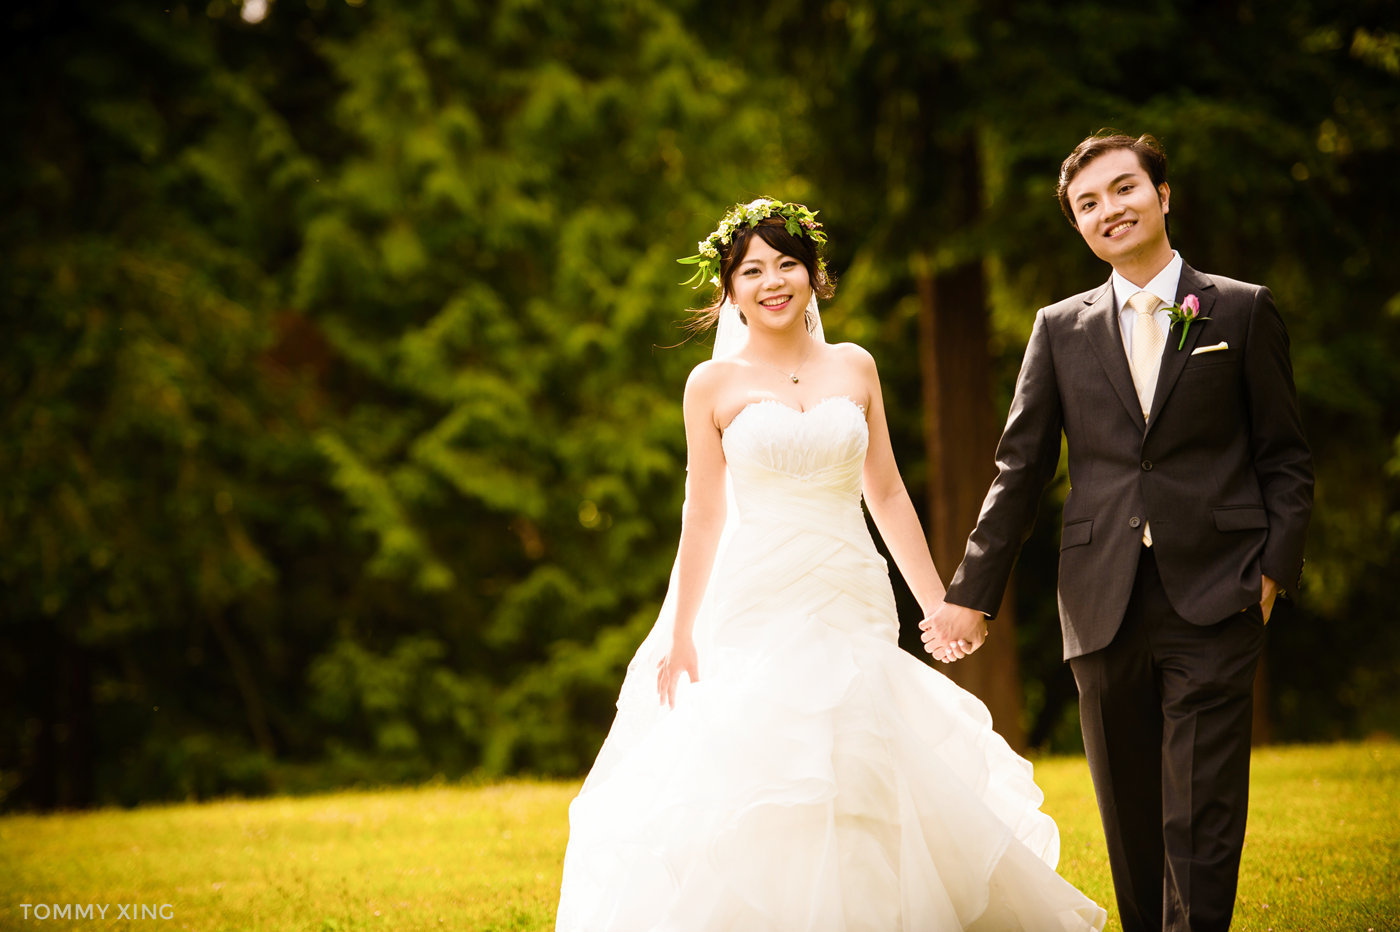 Seattle Wedding and pre wedding Los Angeles Tommy Xing Photography 西雅图洛杉矶旧金山婚礼婚纱照摄影师 121.jpg